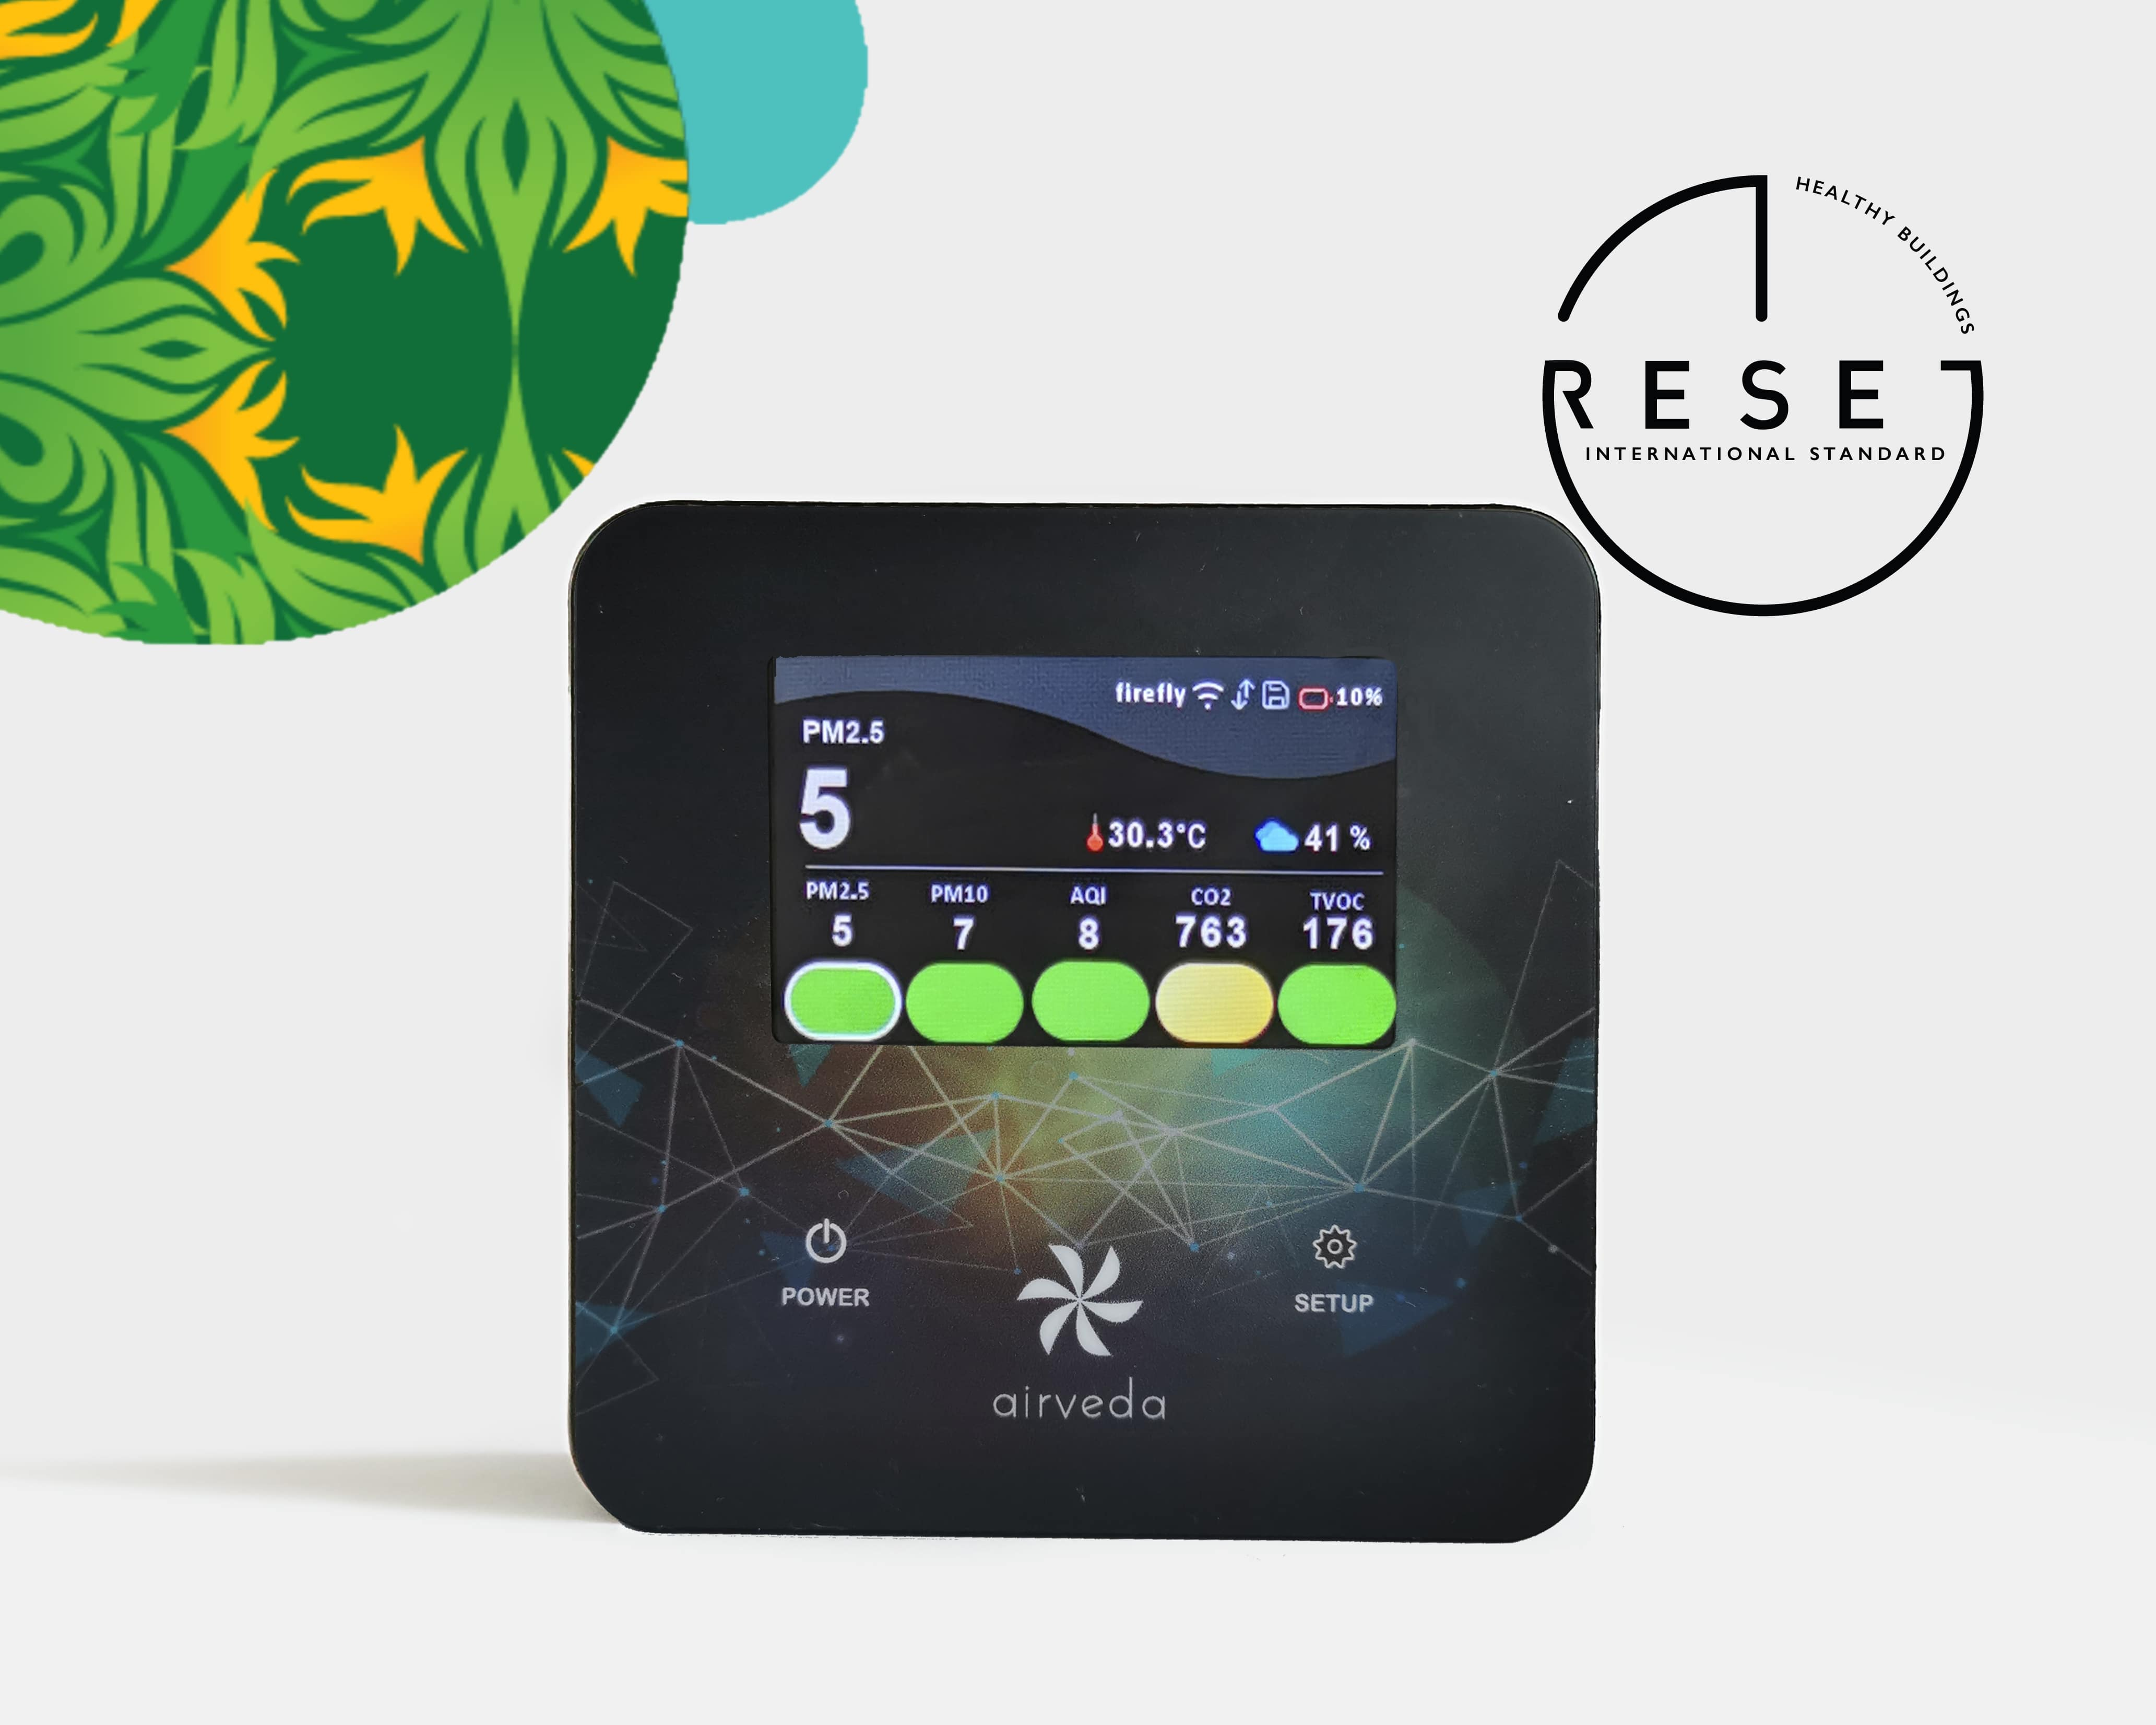 Airveda RESET certified PM2510CVTH br; PM2.5, PM10, CO2, TVOC, Temp, Humidity Monitor Pro Touch Aurora